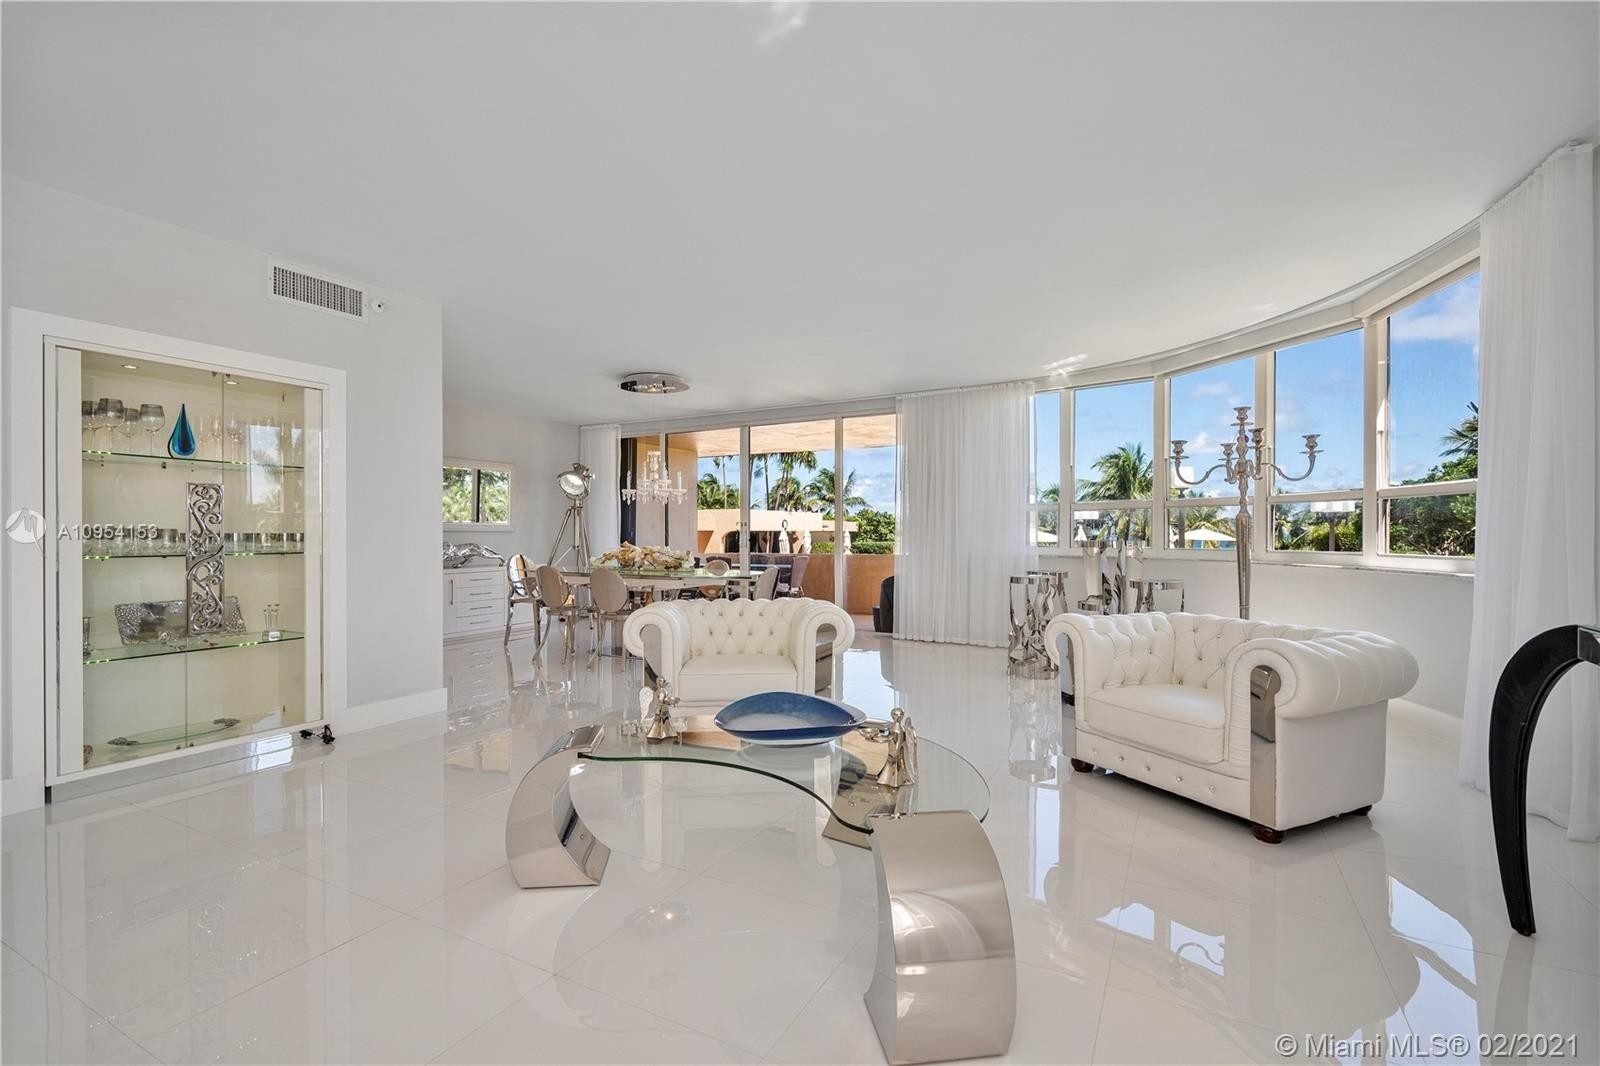 3. Condominiums for Sale at 10175 Collins Ave , 102 Bal Harbour, FL 33154